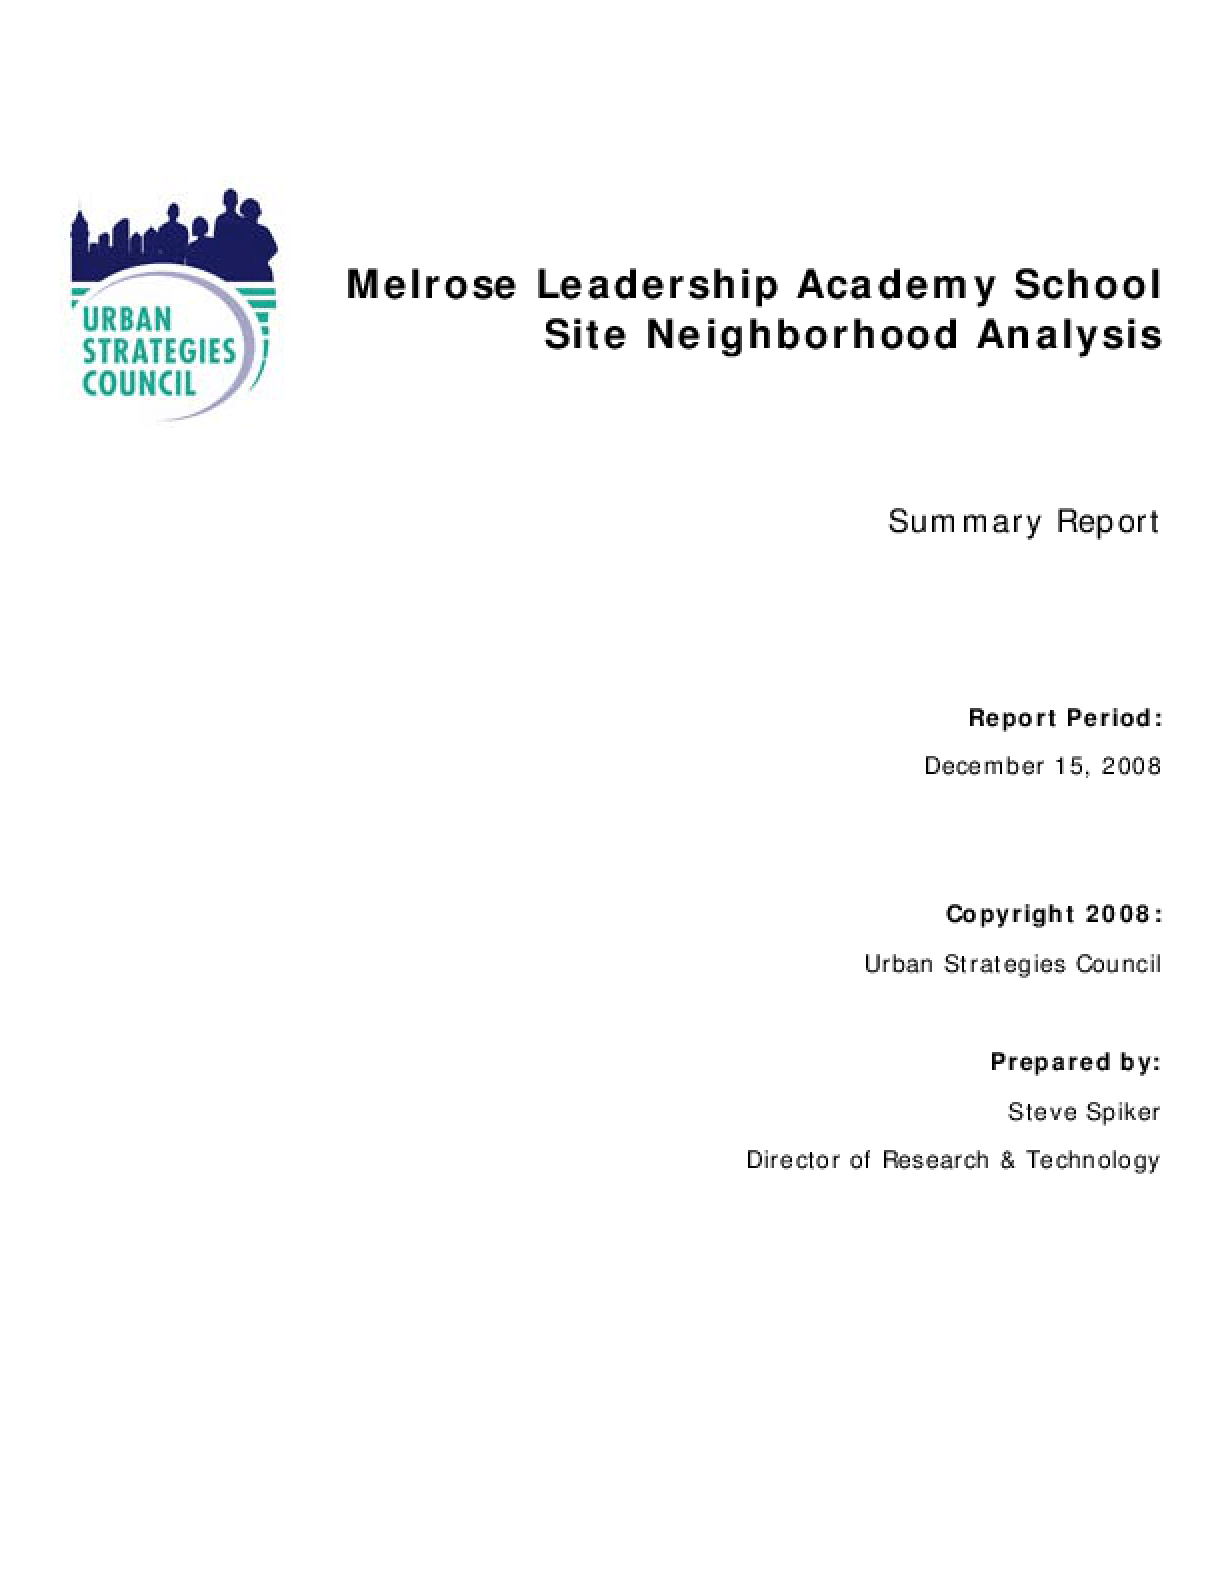 Melrose School Site Planning: A Neighborhood Analysis for OUSD